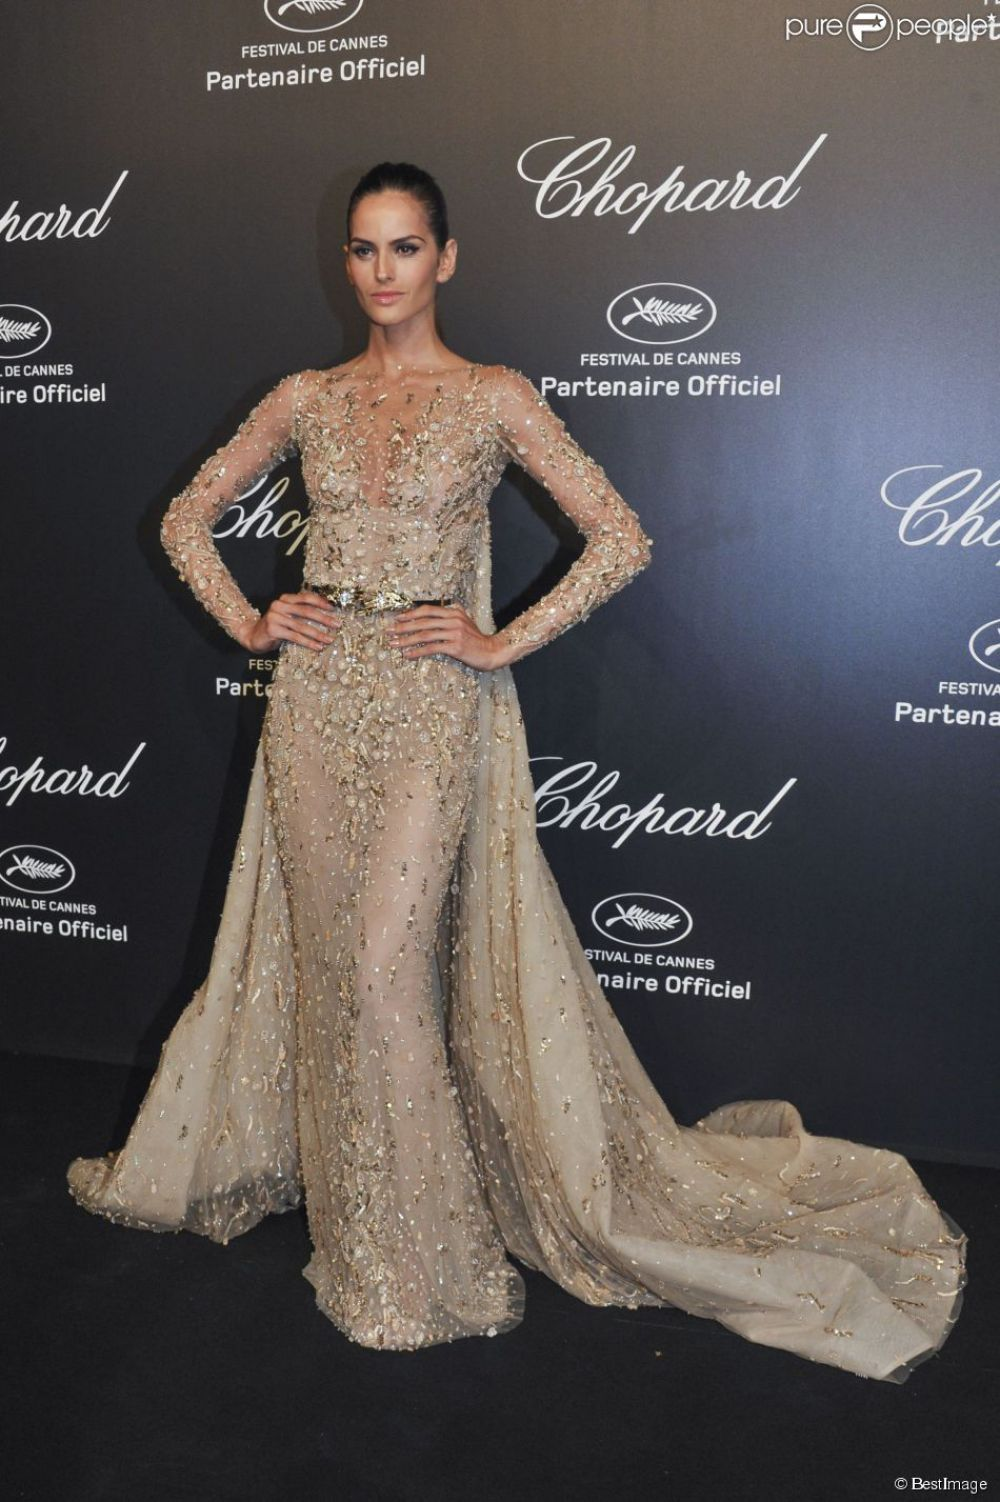 IZABEL GOULART at Soiree Chopard Gold Party in Cannes